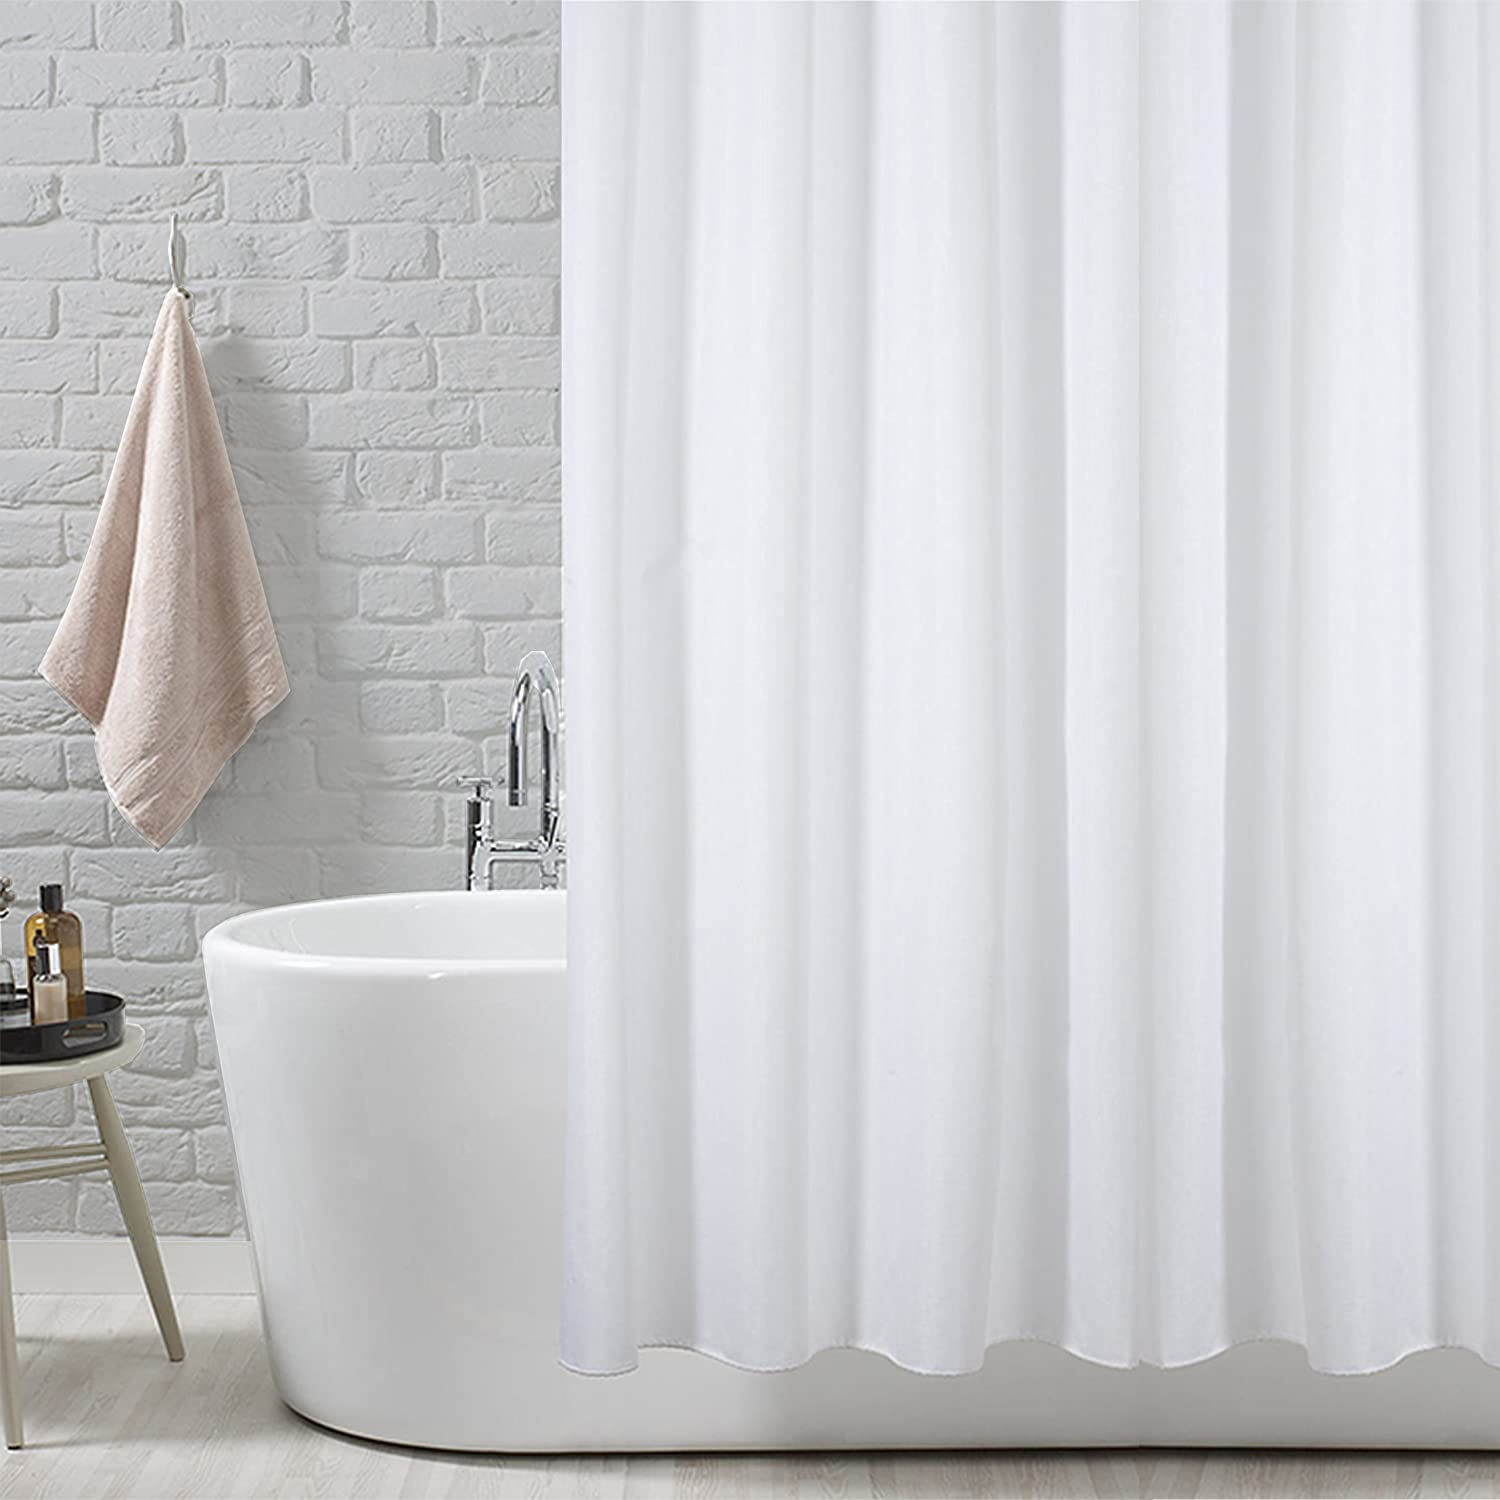 curtain shower unique squared luxury white water fabric jacquard antibacteria repellent waffle curtains collections final